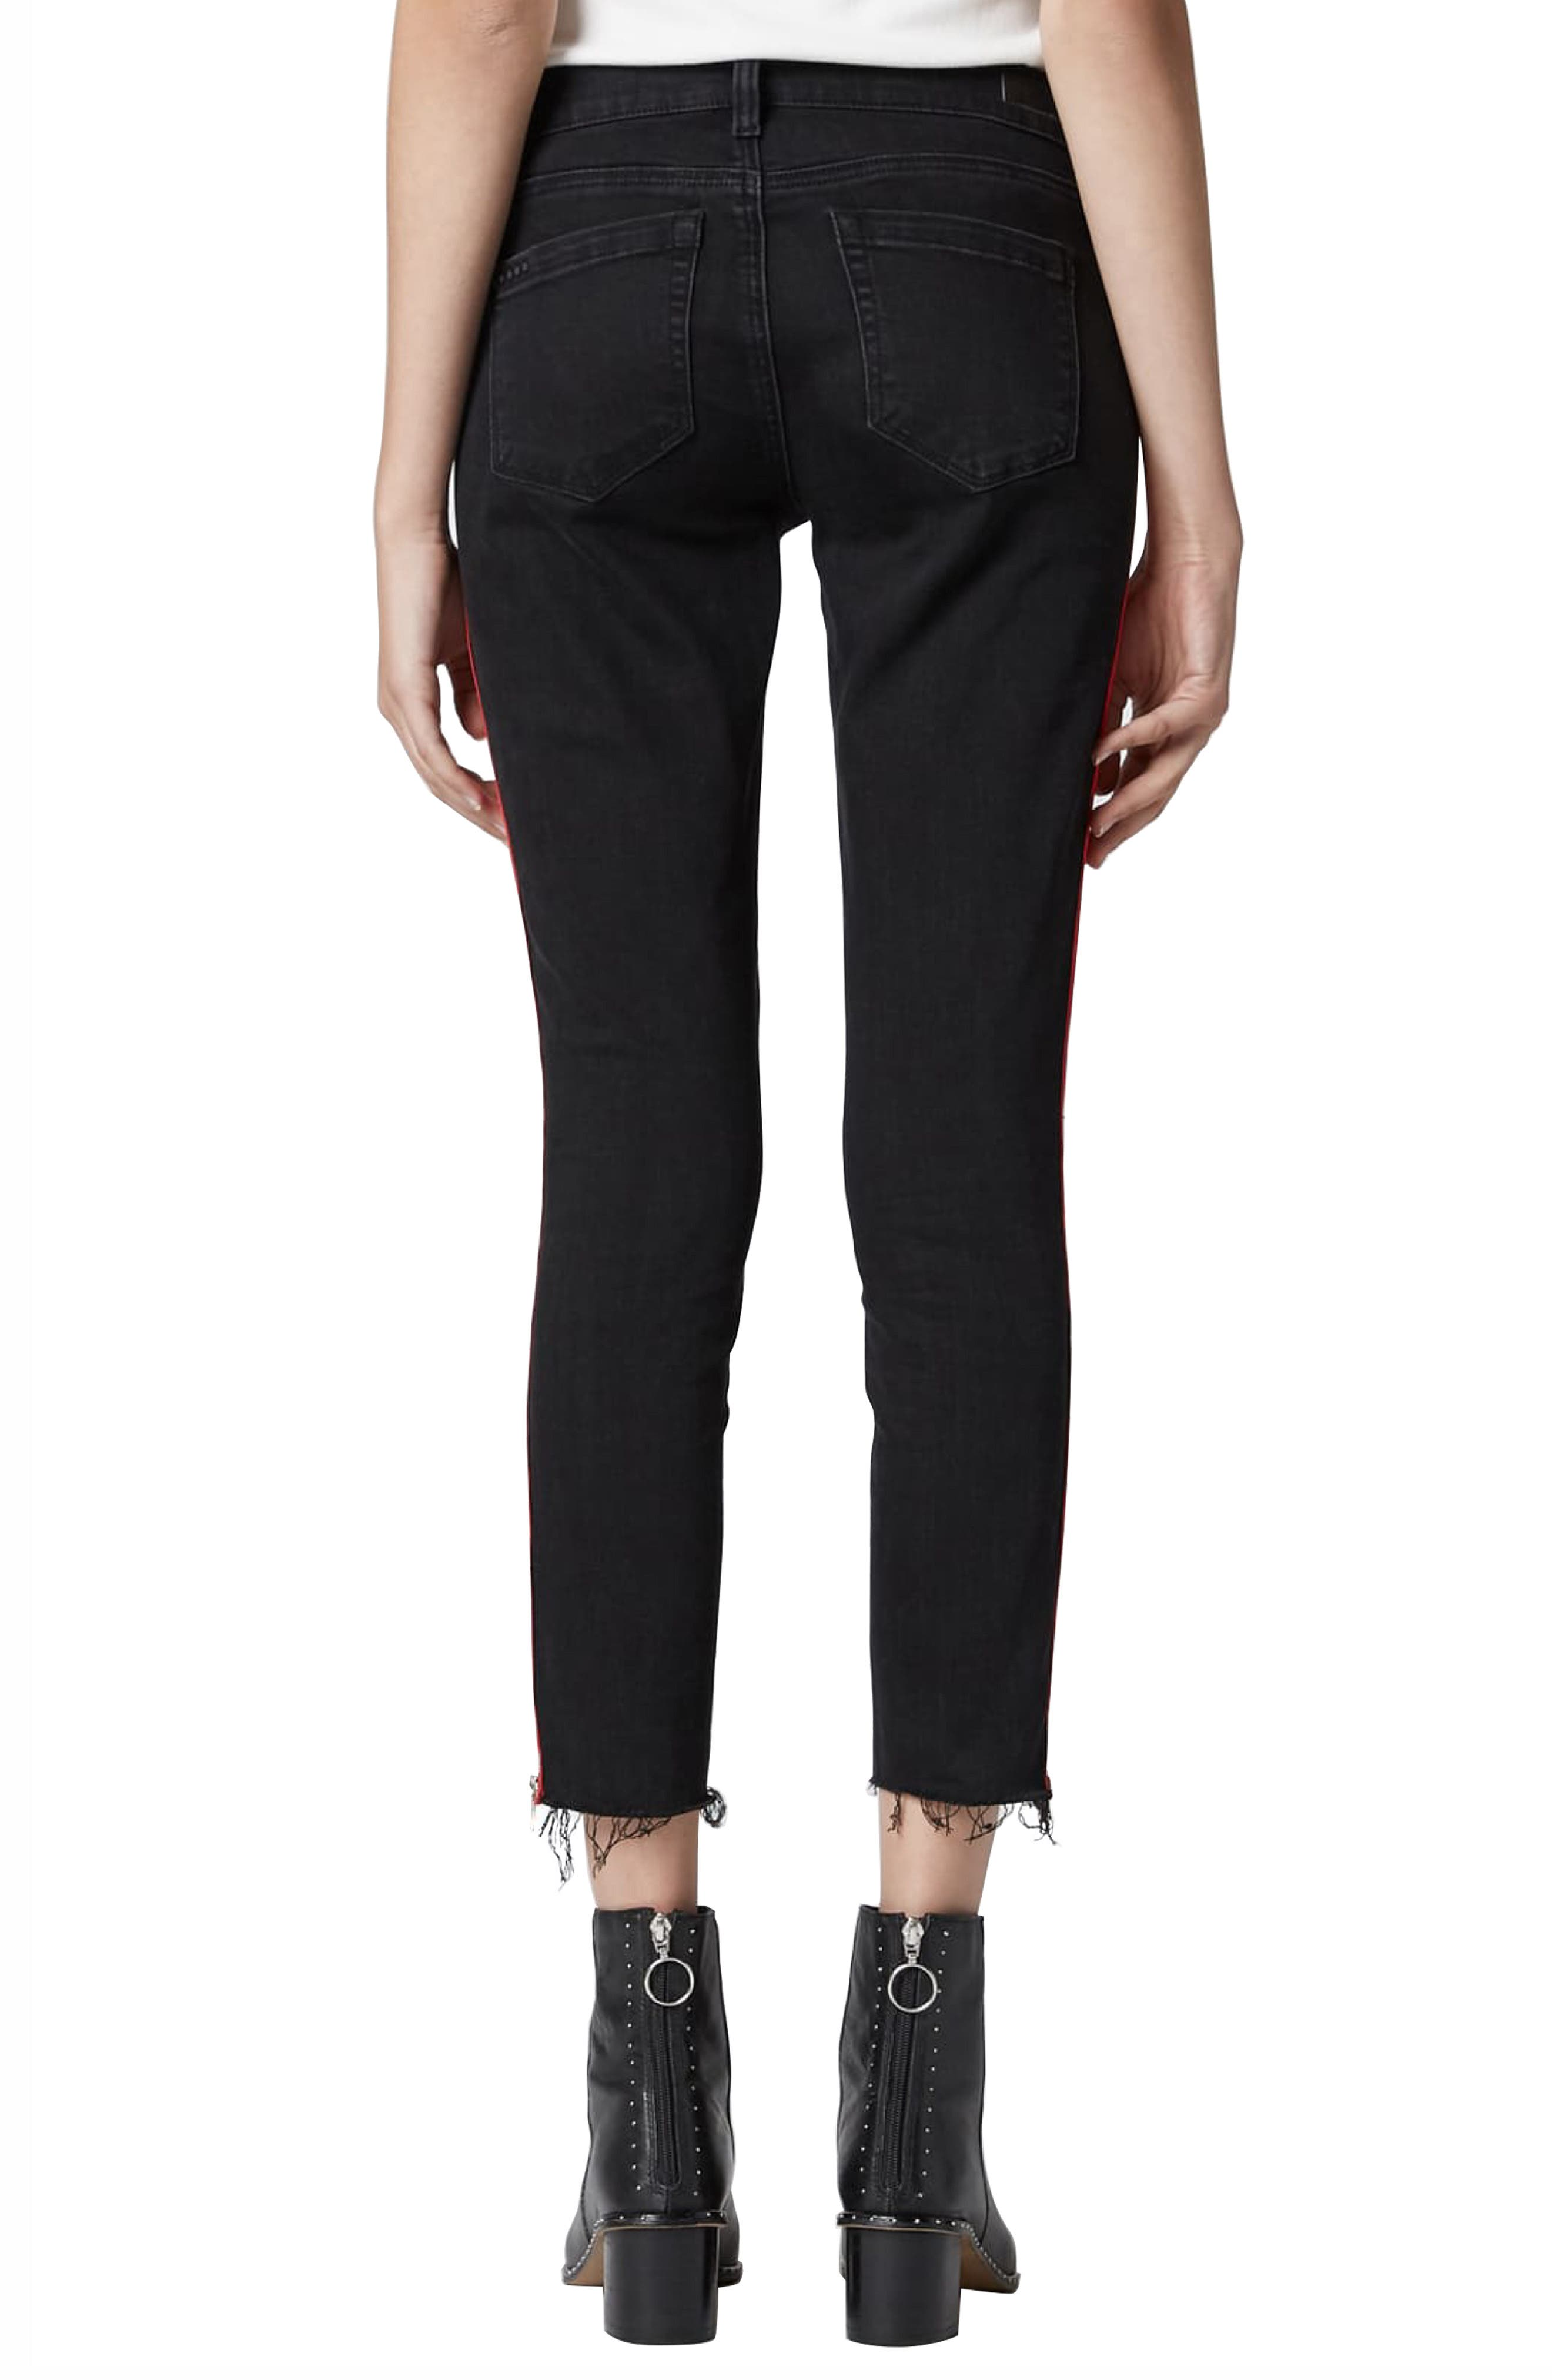 BLANKNYC, The Bond Side Zip Ripped Skinny Jeans, Alternate thumbnail 2, color, 001